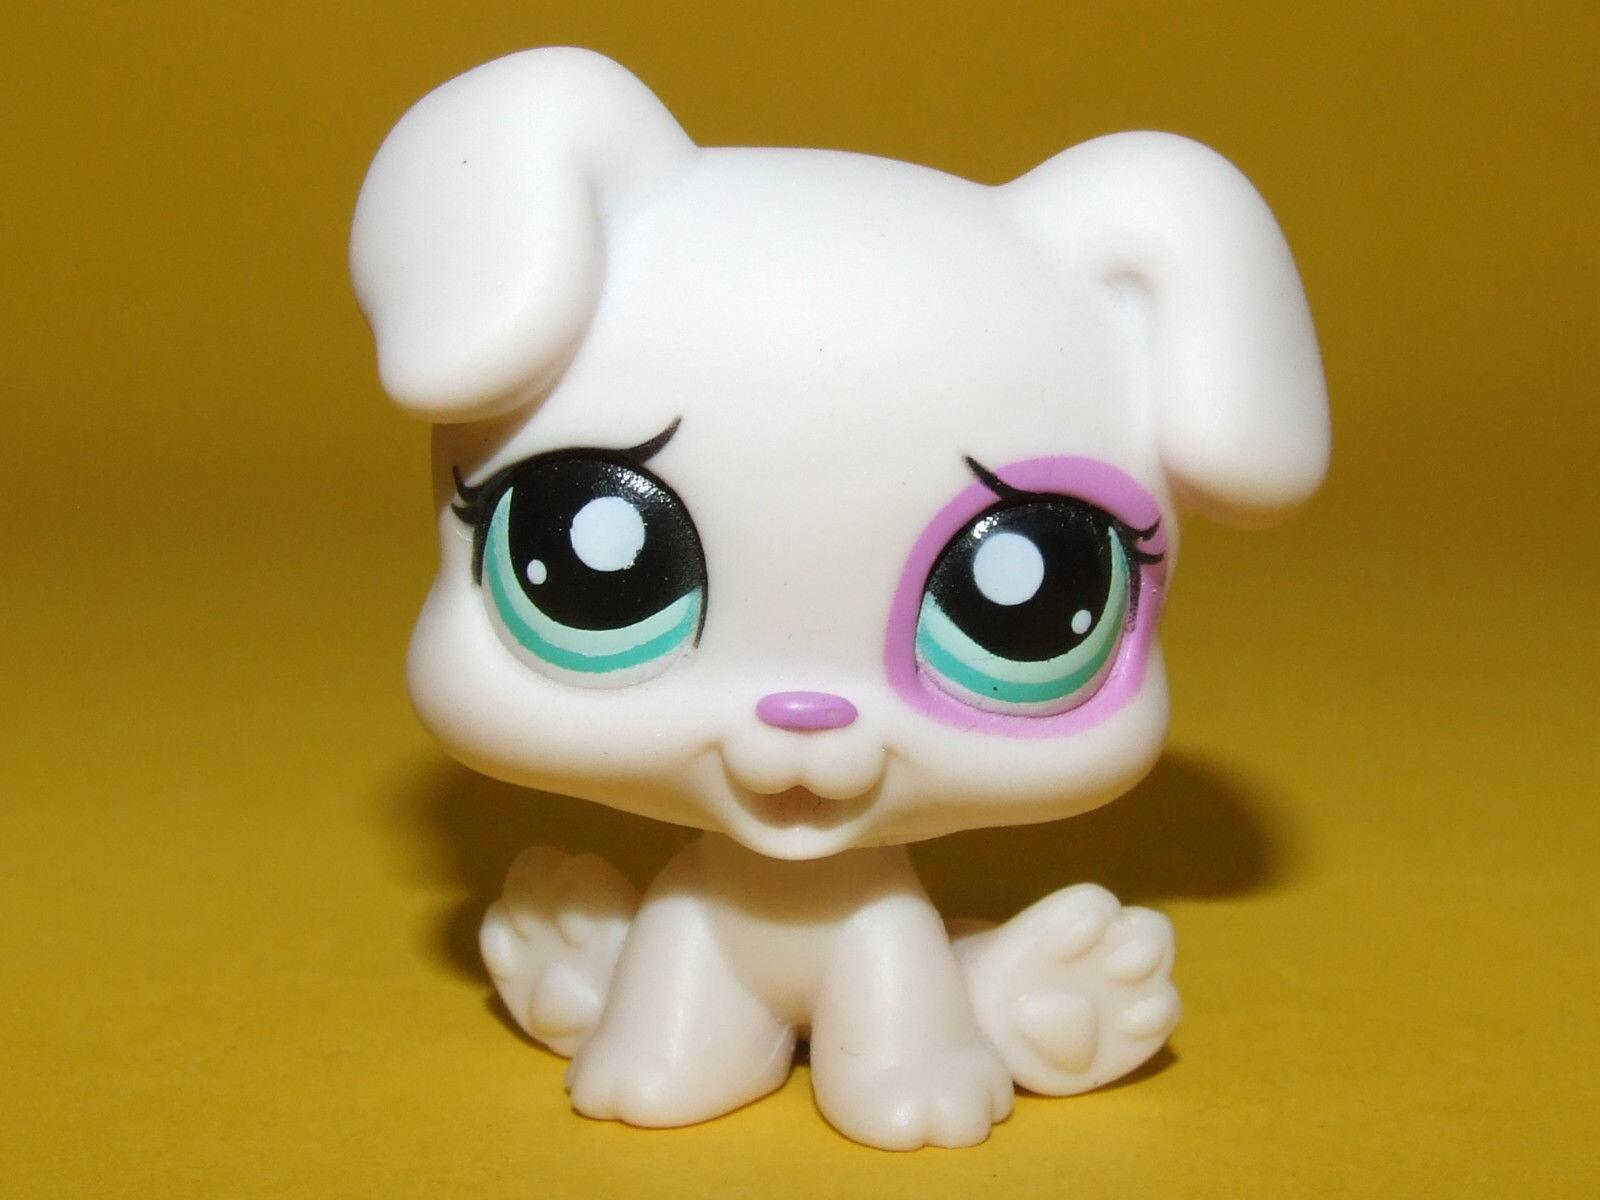 Lps Cat Pet Shop Cute Toys White Pink Baby Boxer Puppy Dog 1534 Action Toy Figures Aliexpress